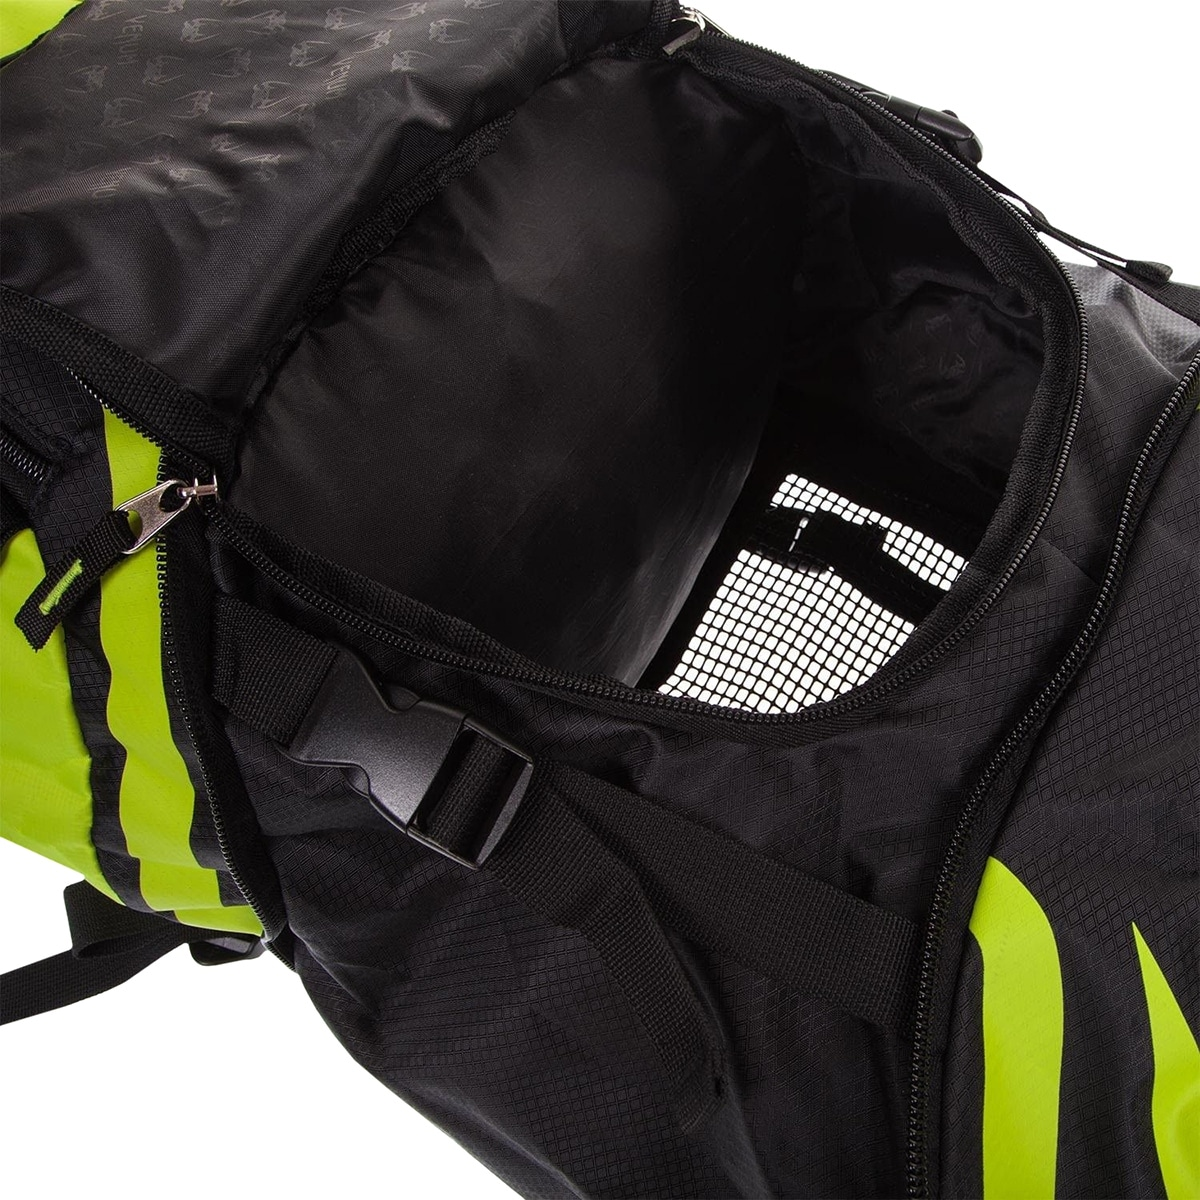 d566618597e2 Shop Venum Challenger Xtreme Backpack - Black Neo Yellow - Free Shipping  Today - Overstock.com - 17117572